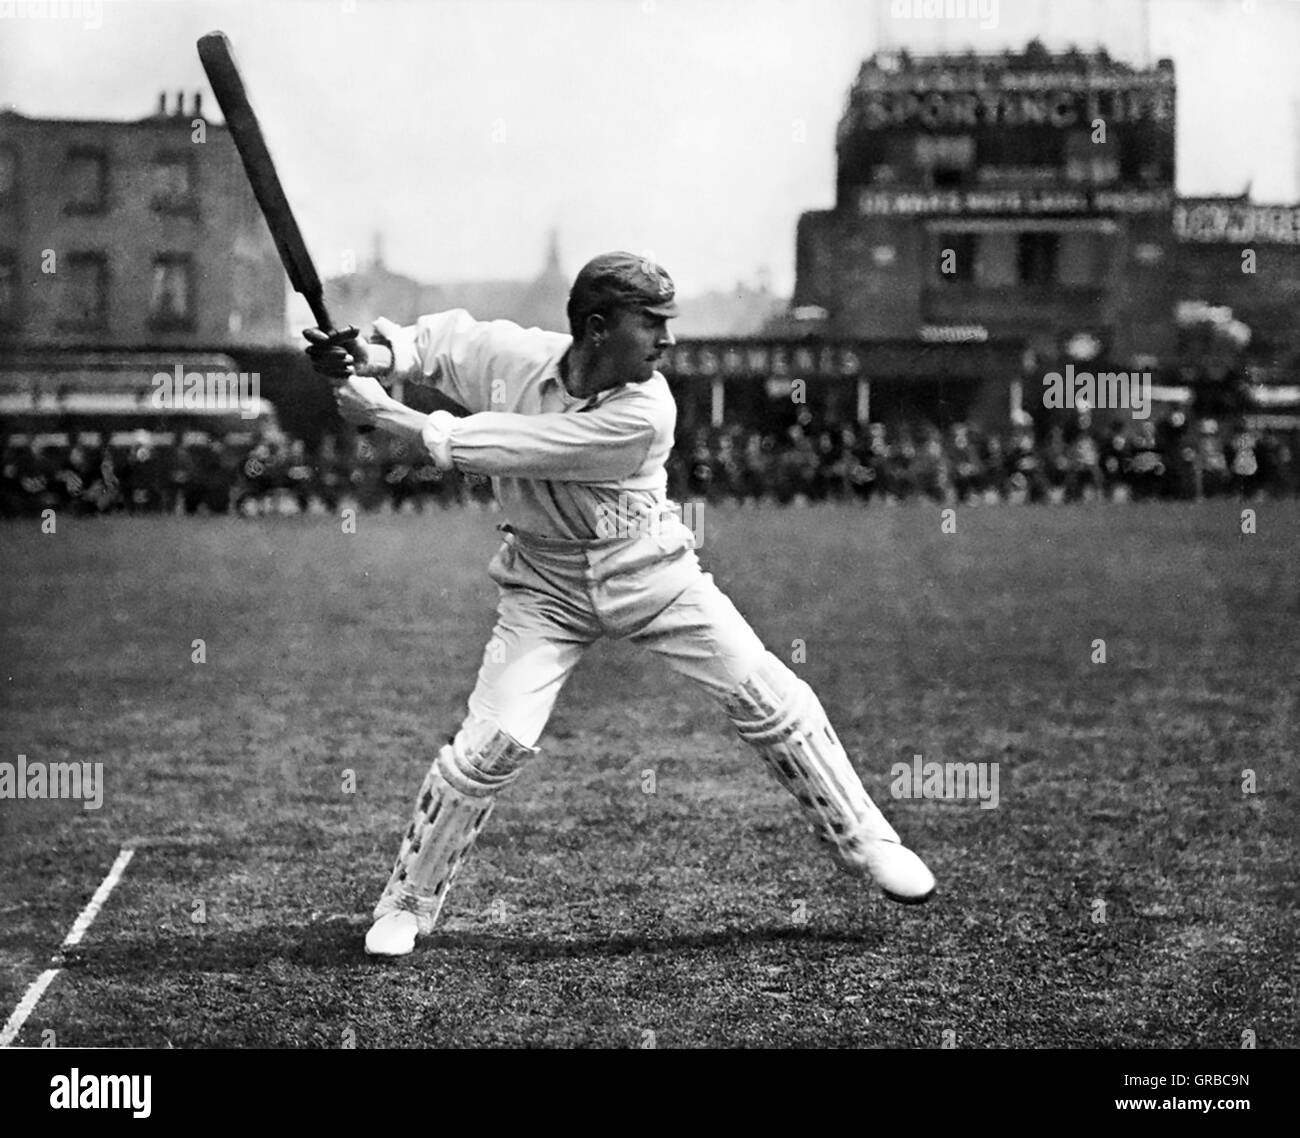 VICTOR TRUMPER (1877-1915) Australian cricketer about 1900 - Stock Image